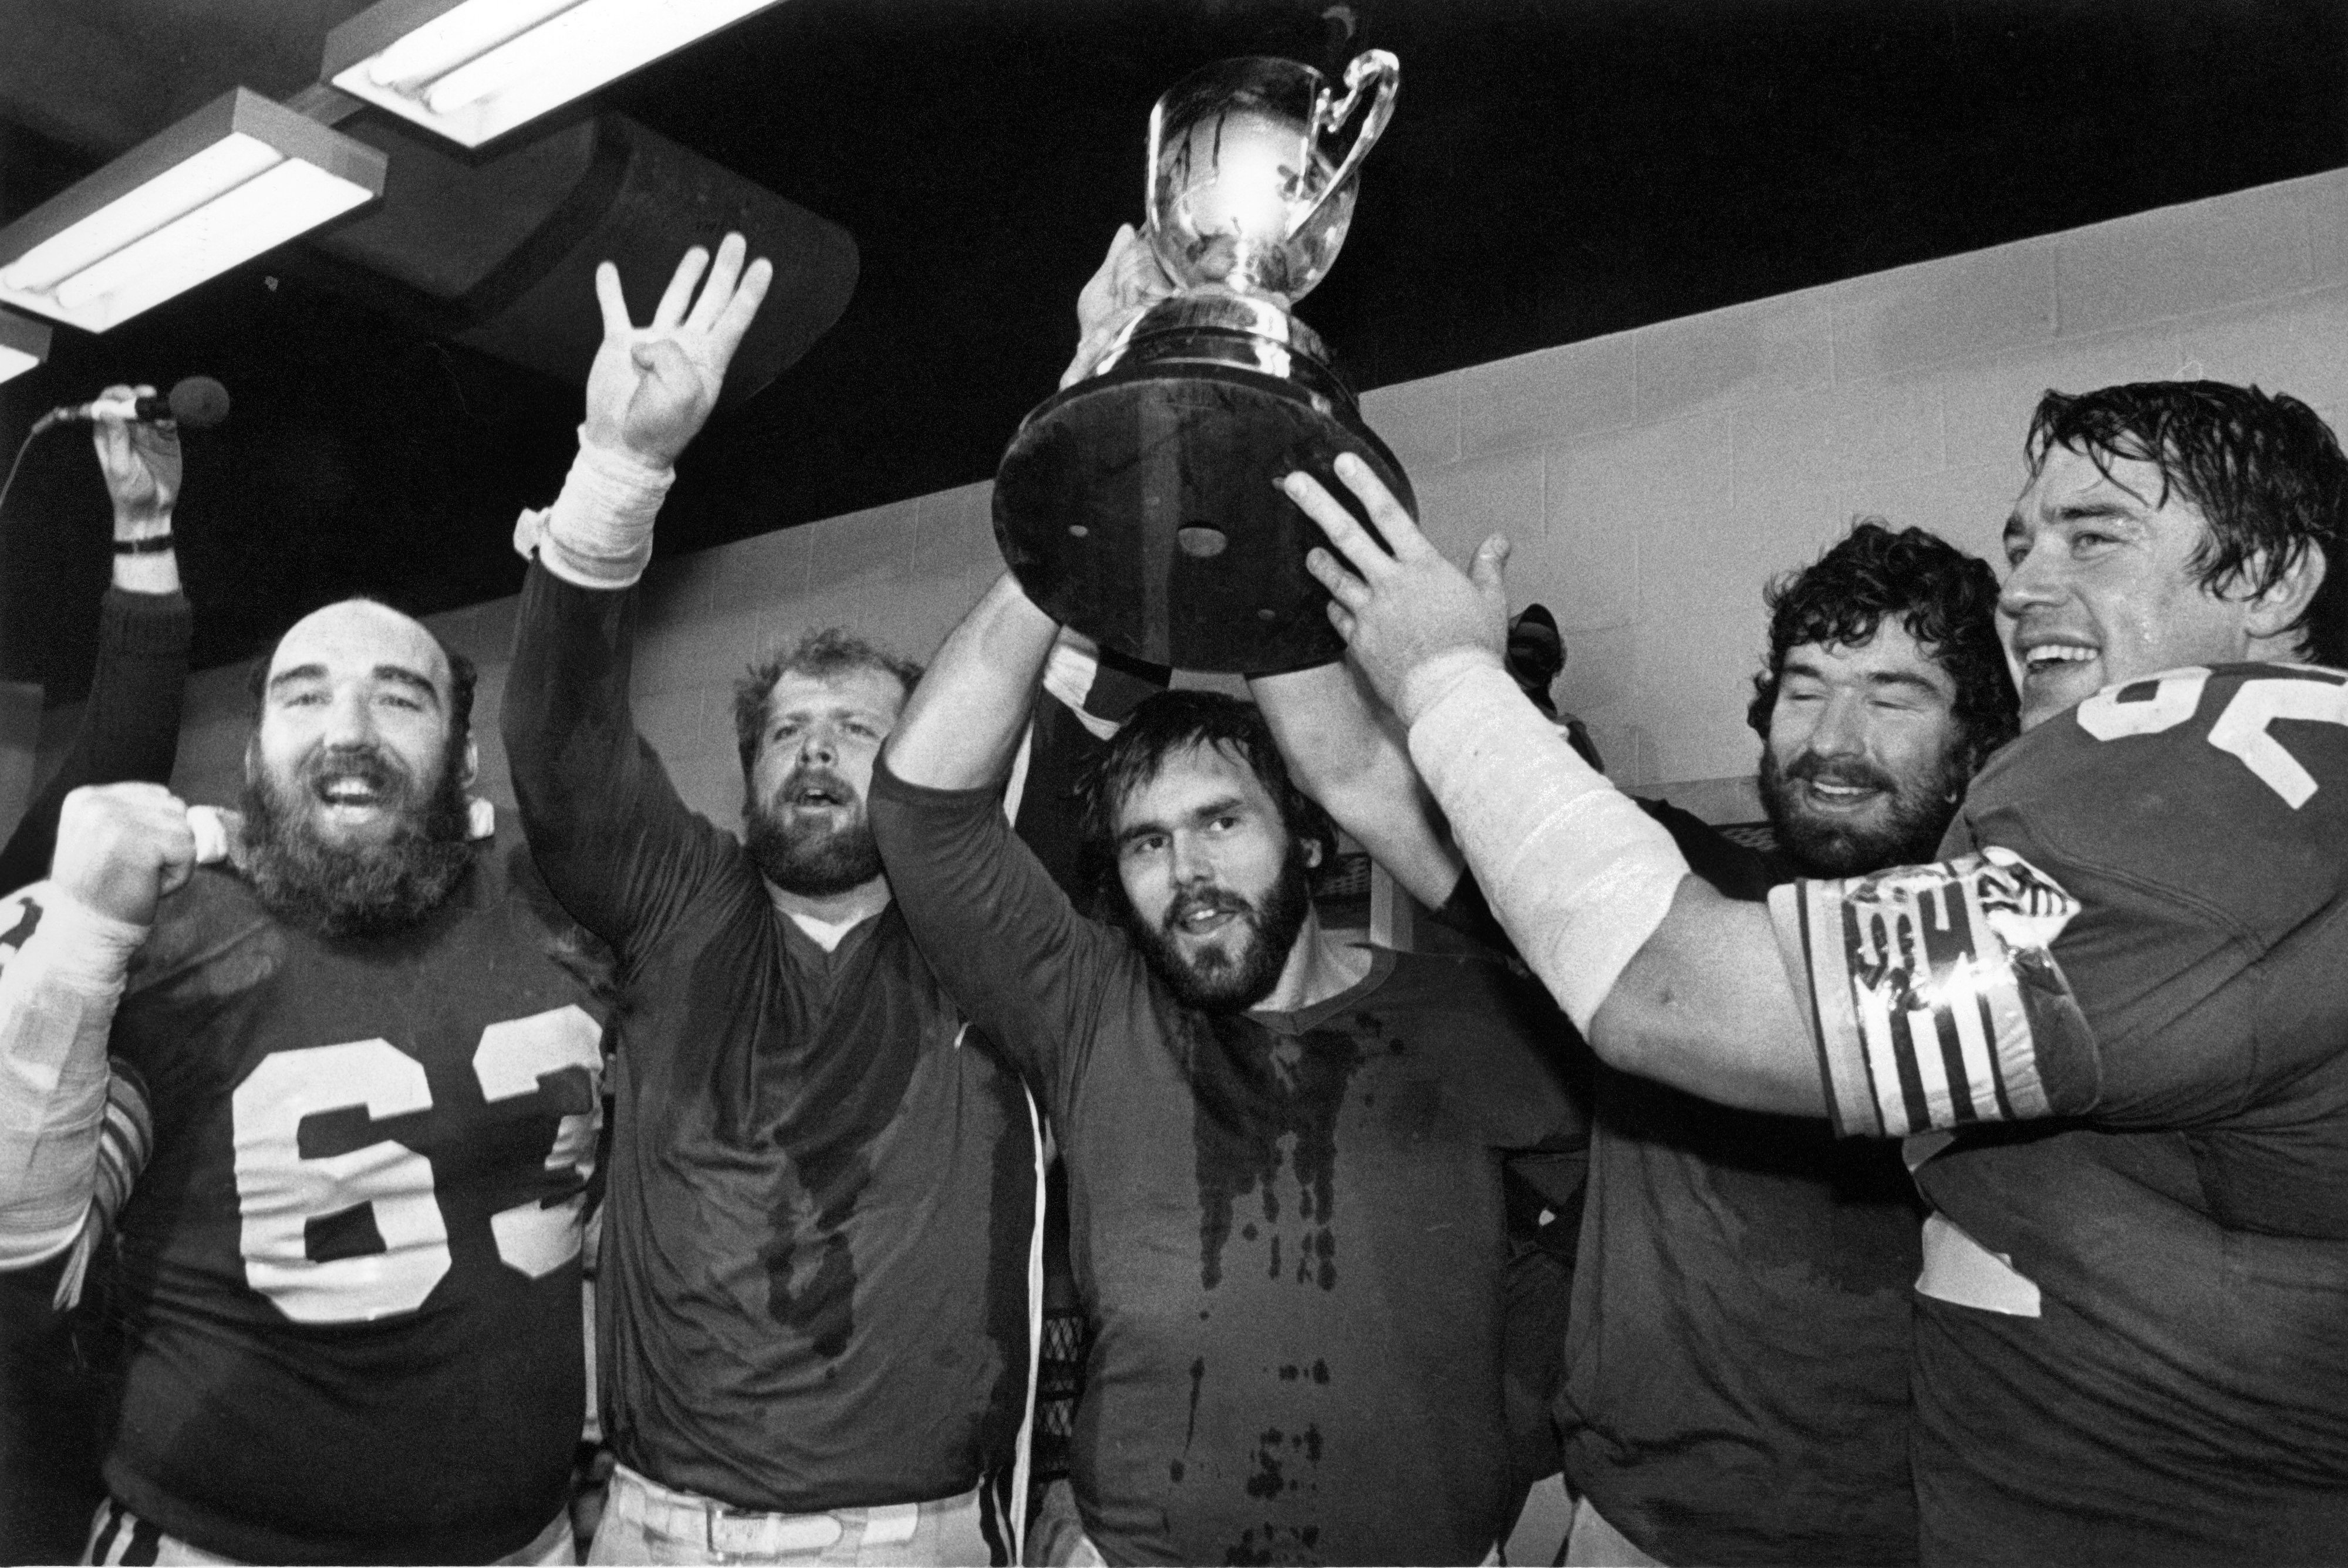 Edmonton Eskimos Hector Pothier, Eric Upton, Ted Milian, Leo Blanchard and Bill Stevenson celebrate their fourth Grey Cup in a row in Montreal, QC November 22, 1981.